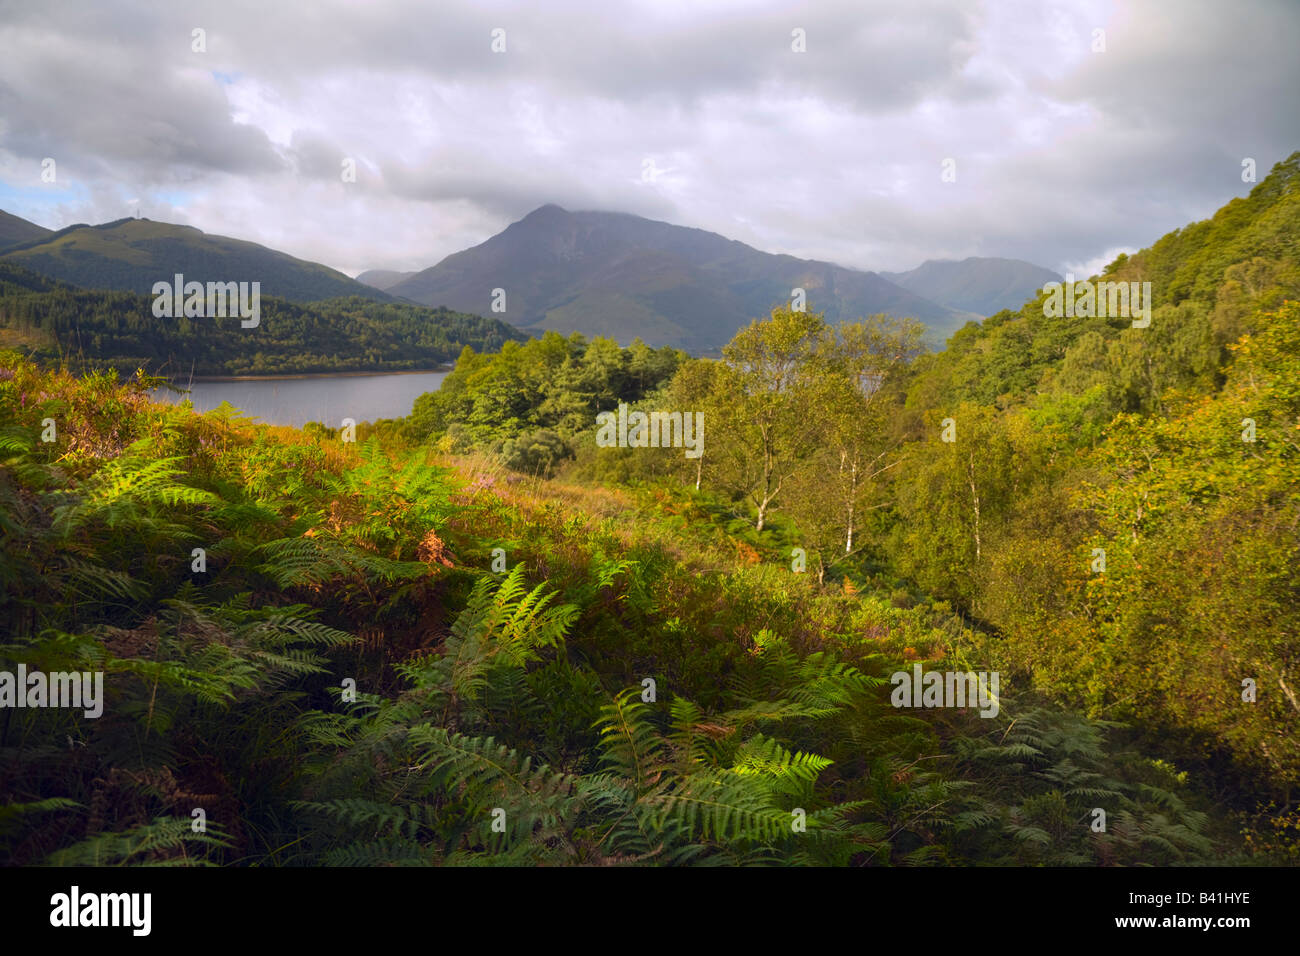 Loch Leven viewed from above North Ballachulish - Stock Image